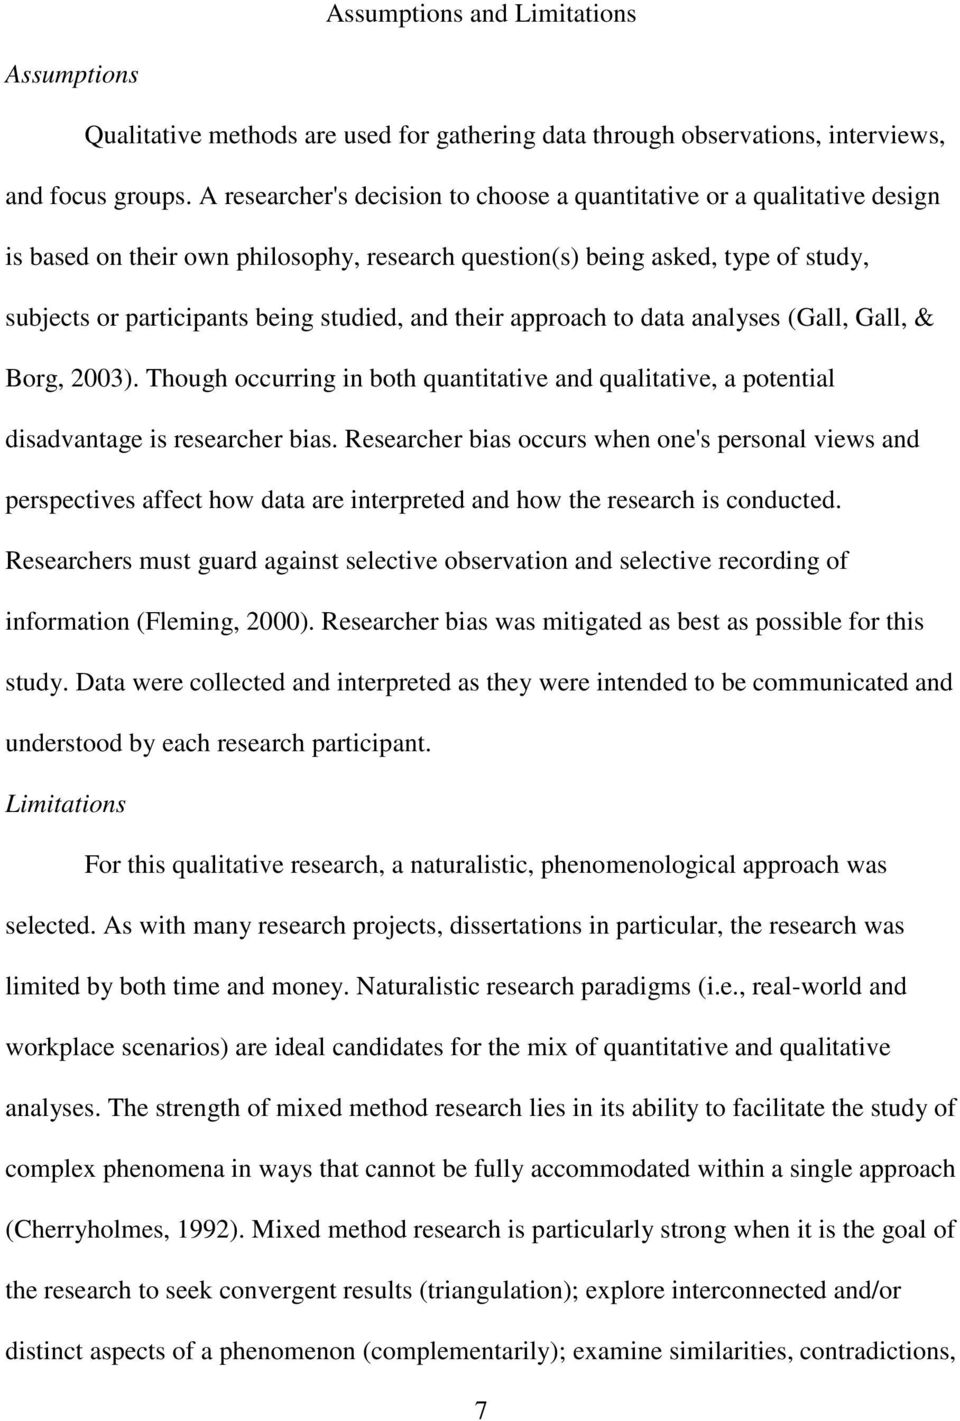 their approach to data analyses (Gall, Gall, & Borg, 2003). Though occurring in both quantitative and qualitative, a potential disadvantage is researcher bias.